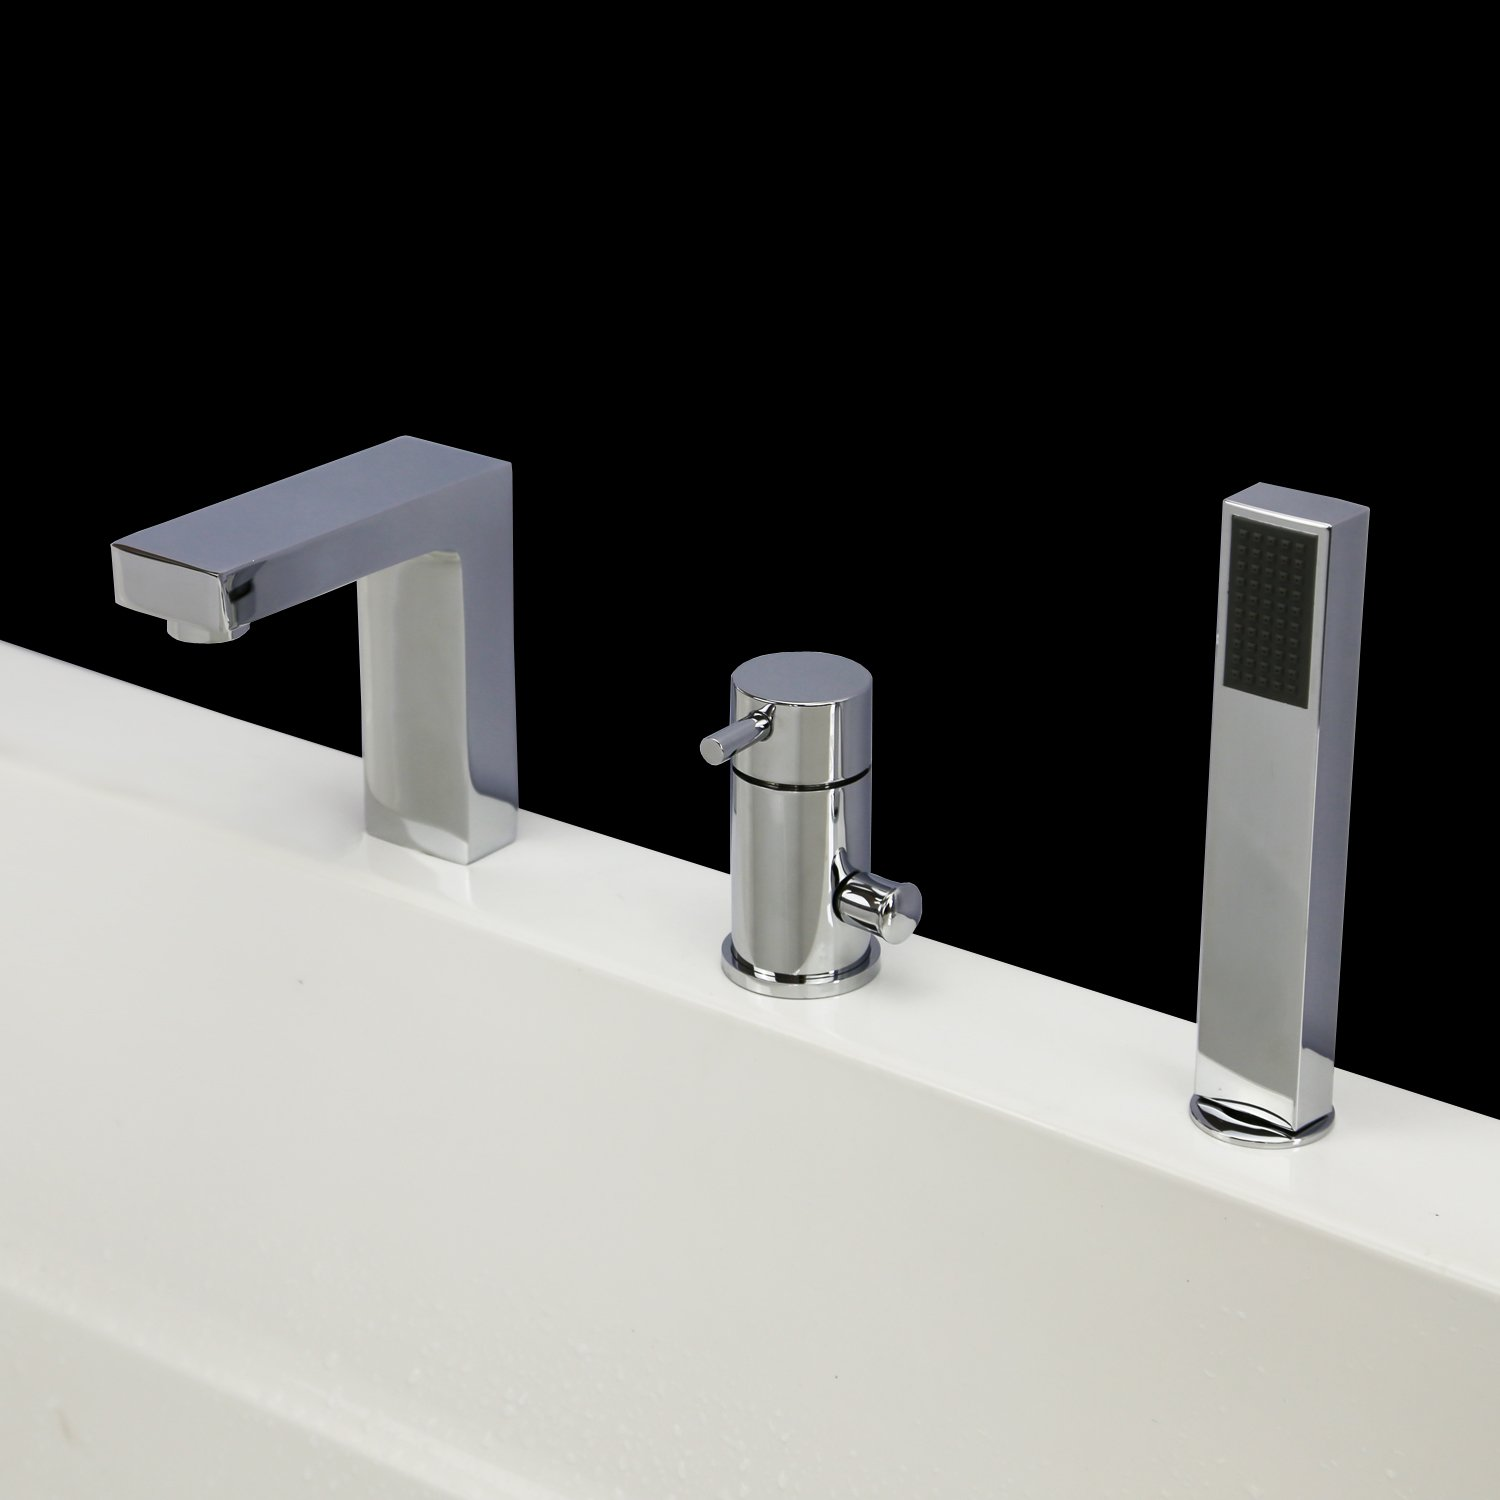 Widespread Bathroom Bathtub Sink Faucet Plunge Bath Faucet Roman ...